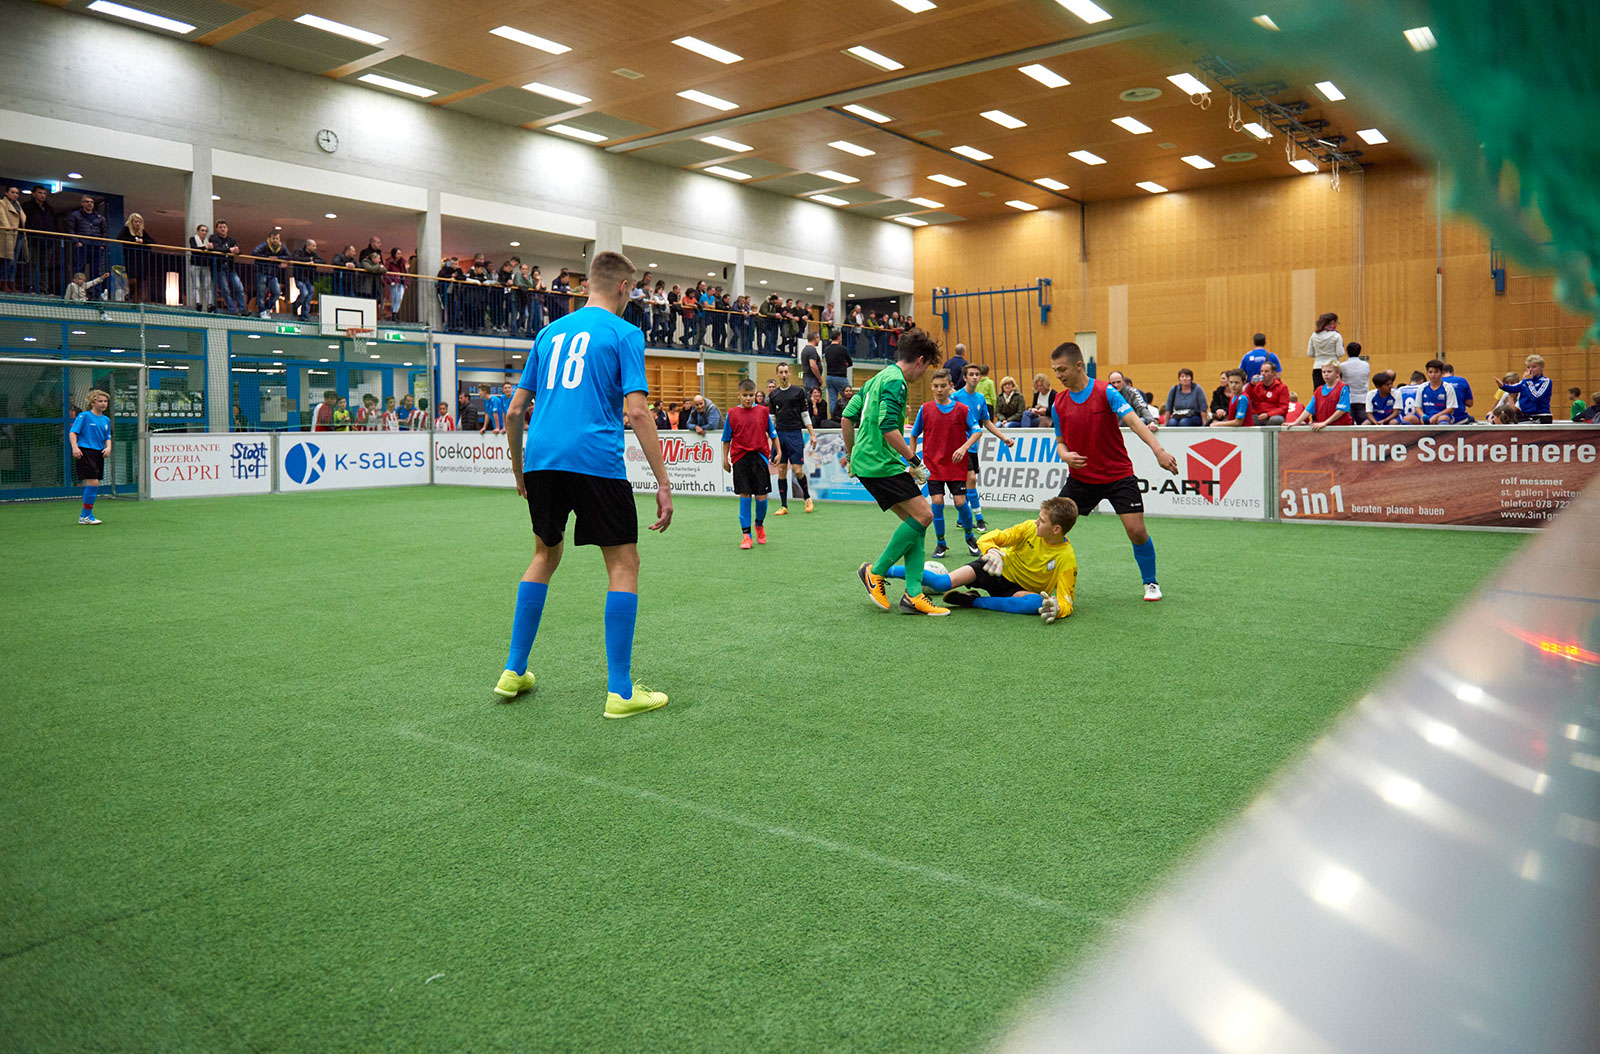 Bodensee-Cup_20171111_220558.jpg